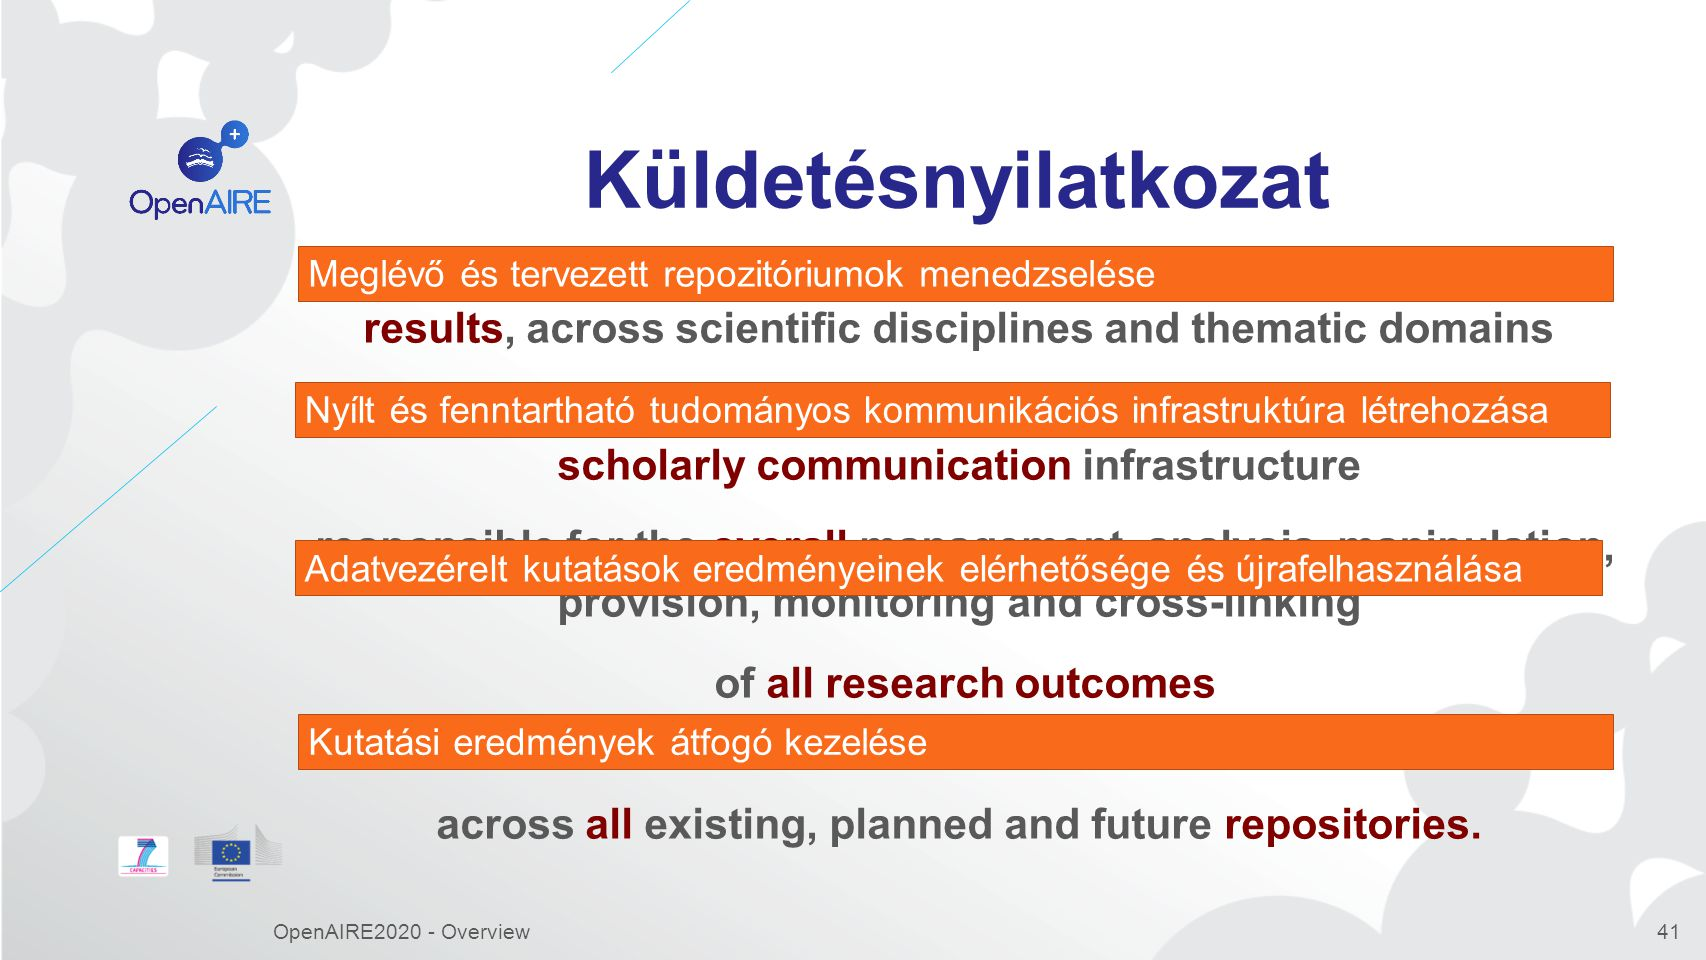 Küldetésnyilatkozat Promote the discoverability and reuse of data-driven research results, across scientific disciplines and thematic domains.